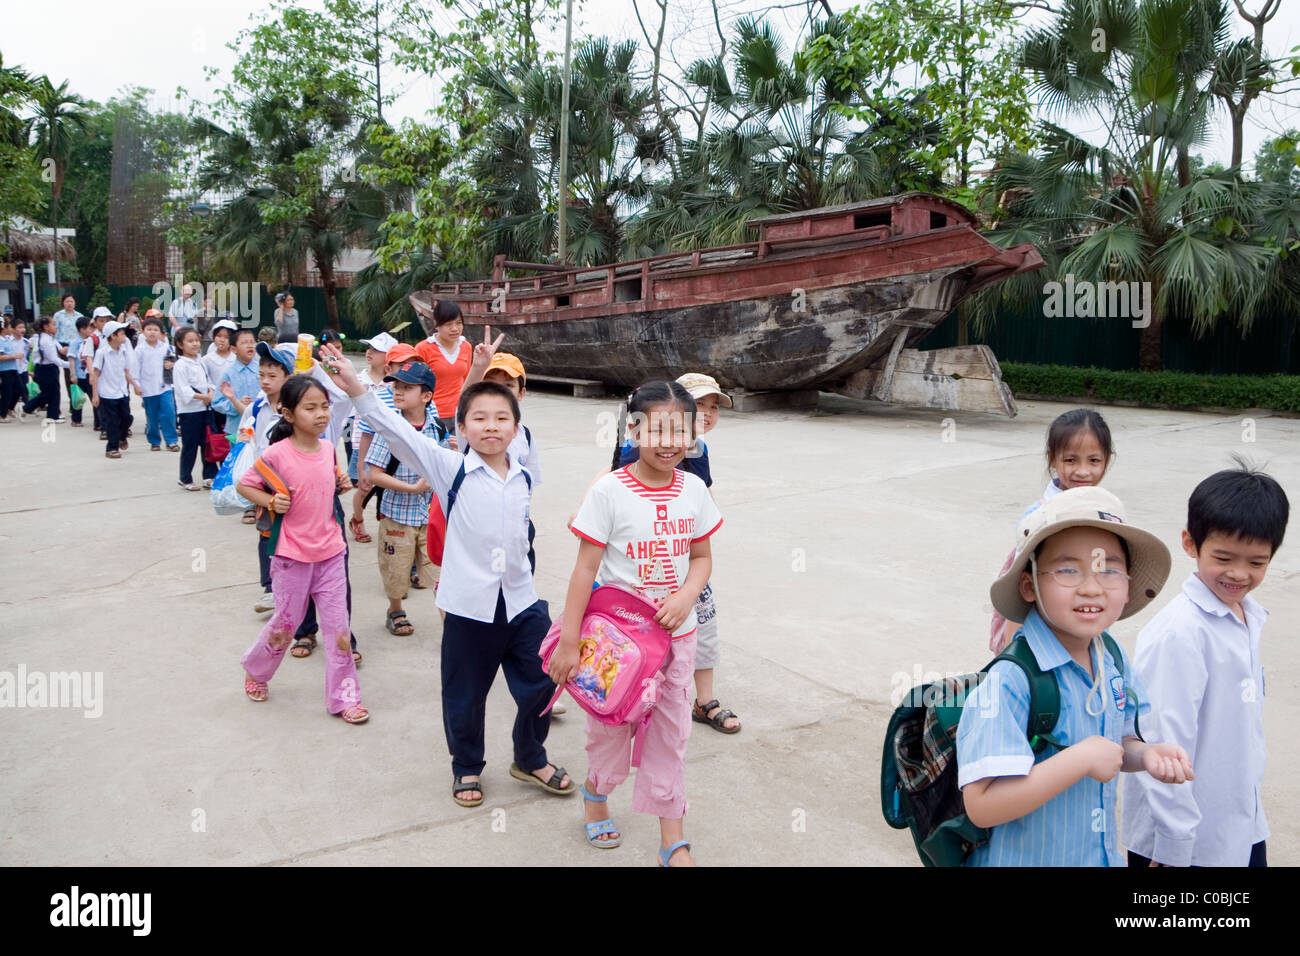 School children visiting the Vietnam Museum of Ethnology, Nguyen Van Huyen St, Cau Giay, Hanoi, Vietnam - Stock Image